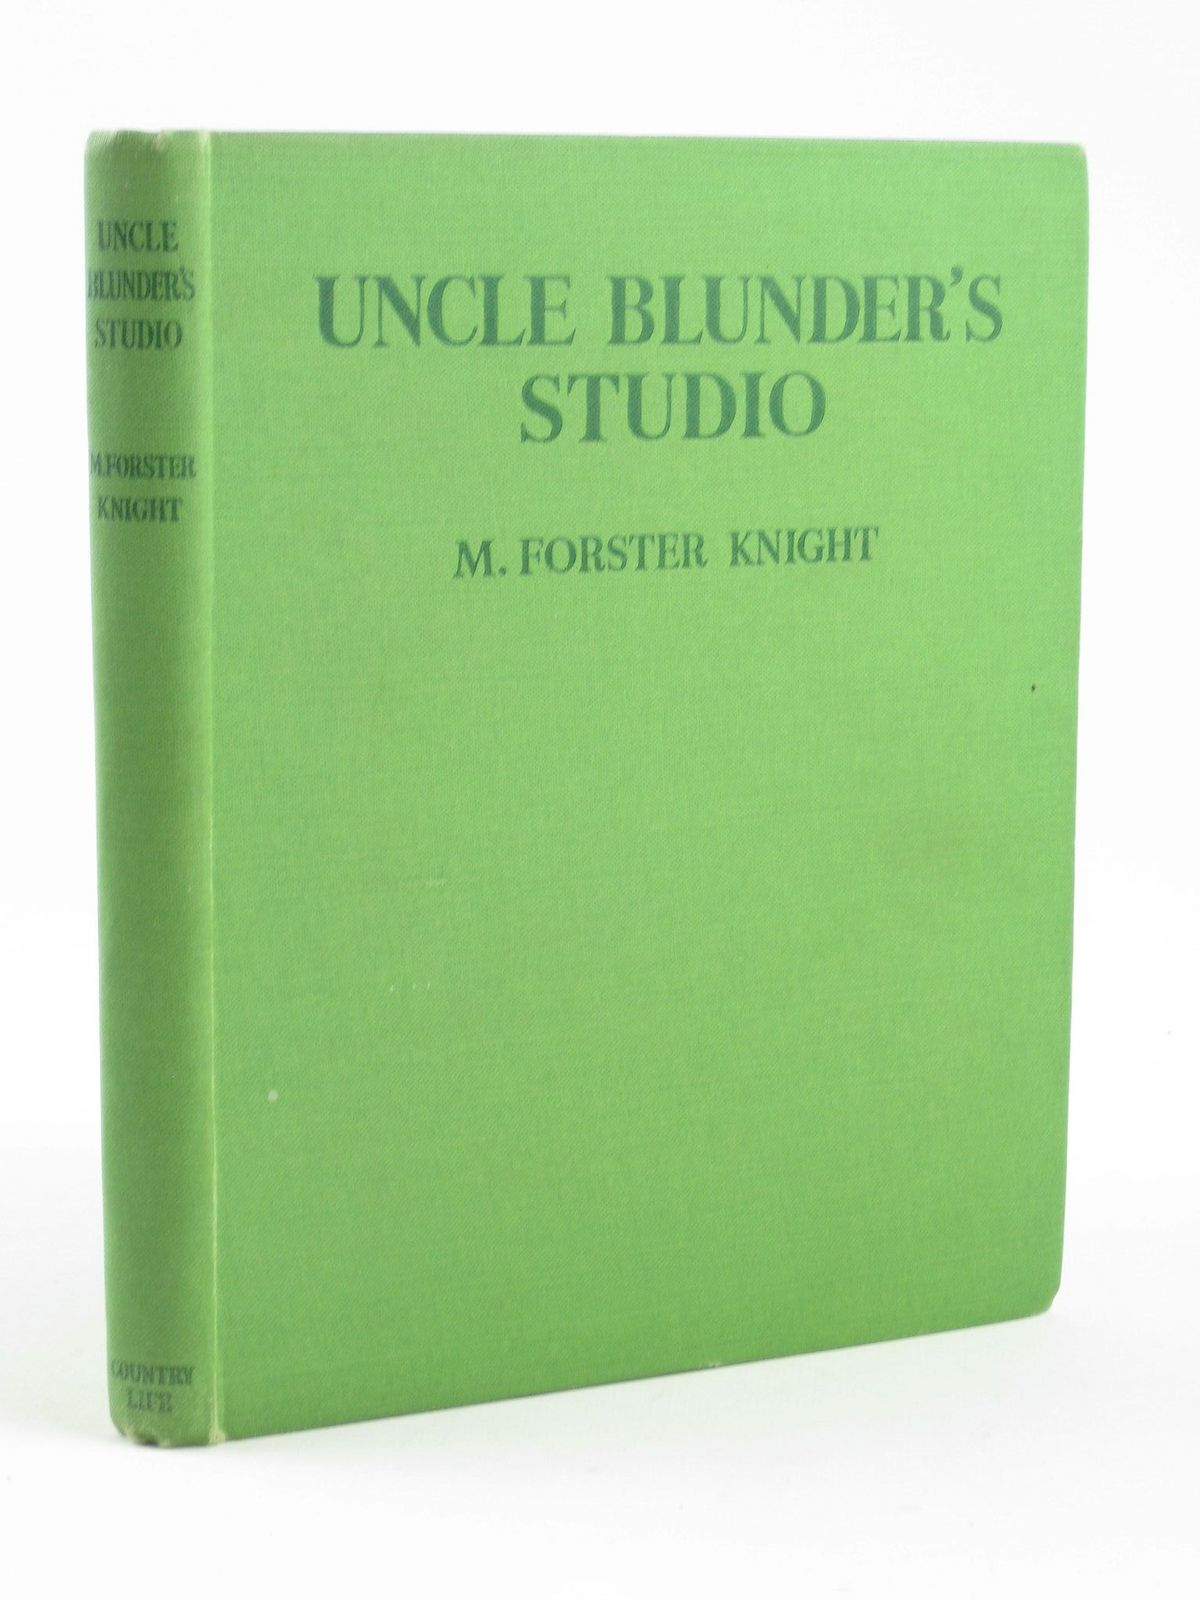 Photo of UNCLE BLUNDER'S STUDIO written by Knight, M. Forster illustrated by Knight, M. Forster published by Country Life Ltd. (STOCK CODE: 1311343)  for sale by Stella & Rose's Books